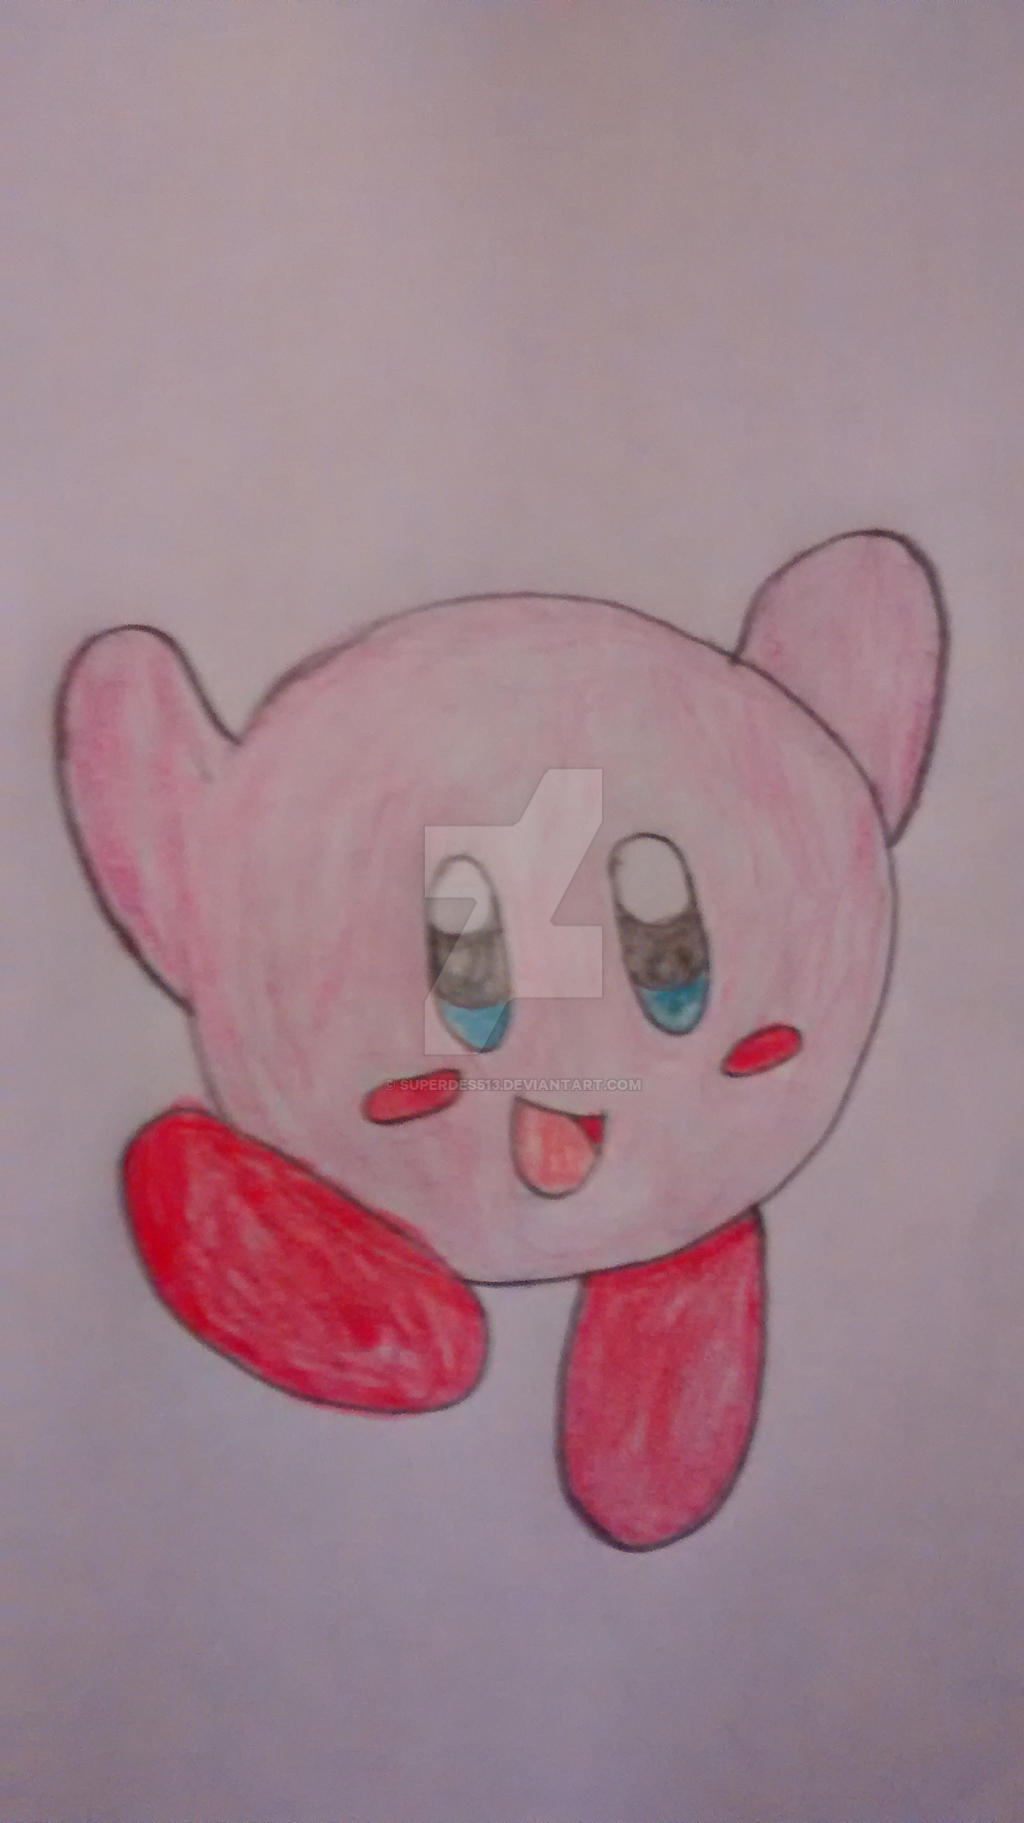 Kirby (Re-draw) by superdes513